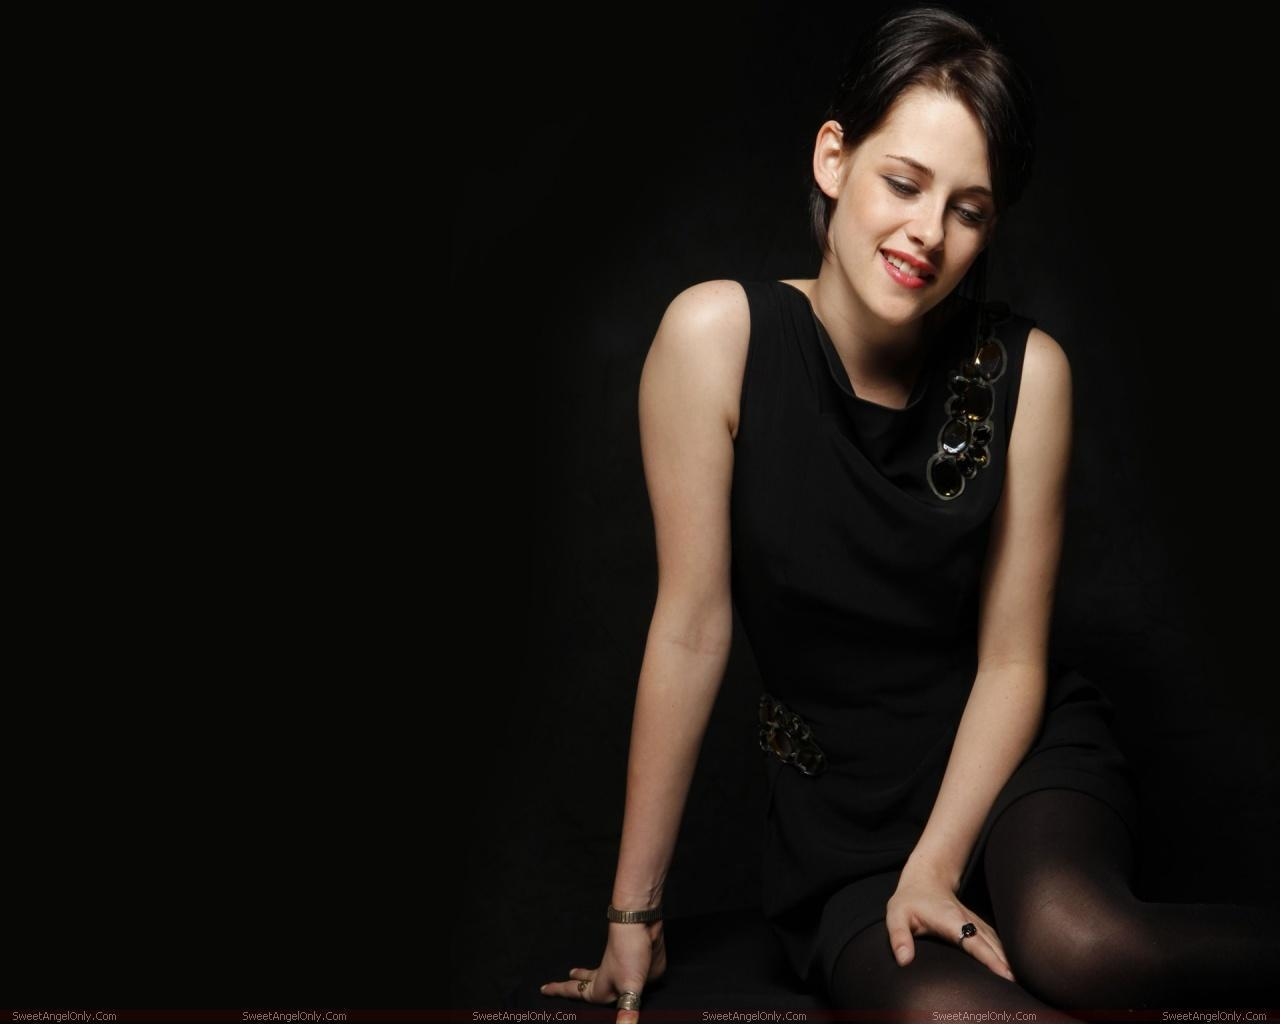 http://2.bp.blogspot.com/-Rh5h2JTyhc0/TX4SxrFrQ2I/AAAAAAAAFjk/2v6REPBaHQI/s1600/kristen_stewart_hollywood_hot_actress_wallpaper_sweetangelonly_05.jpg